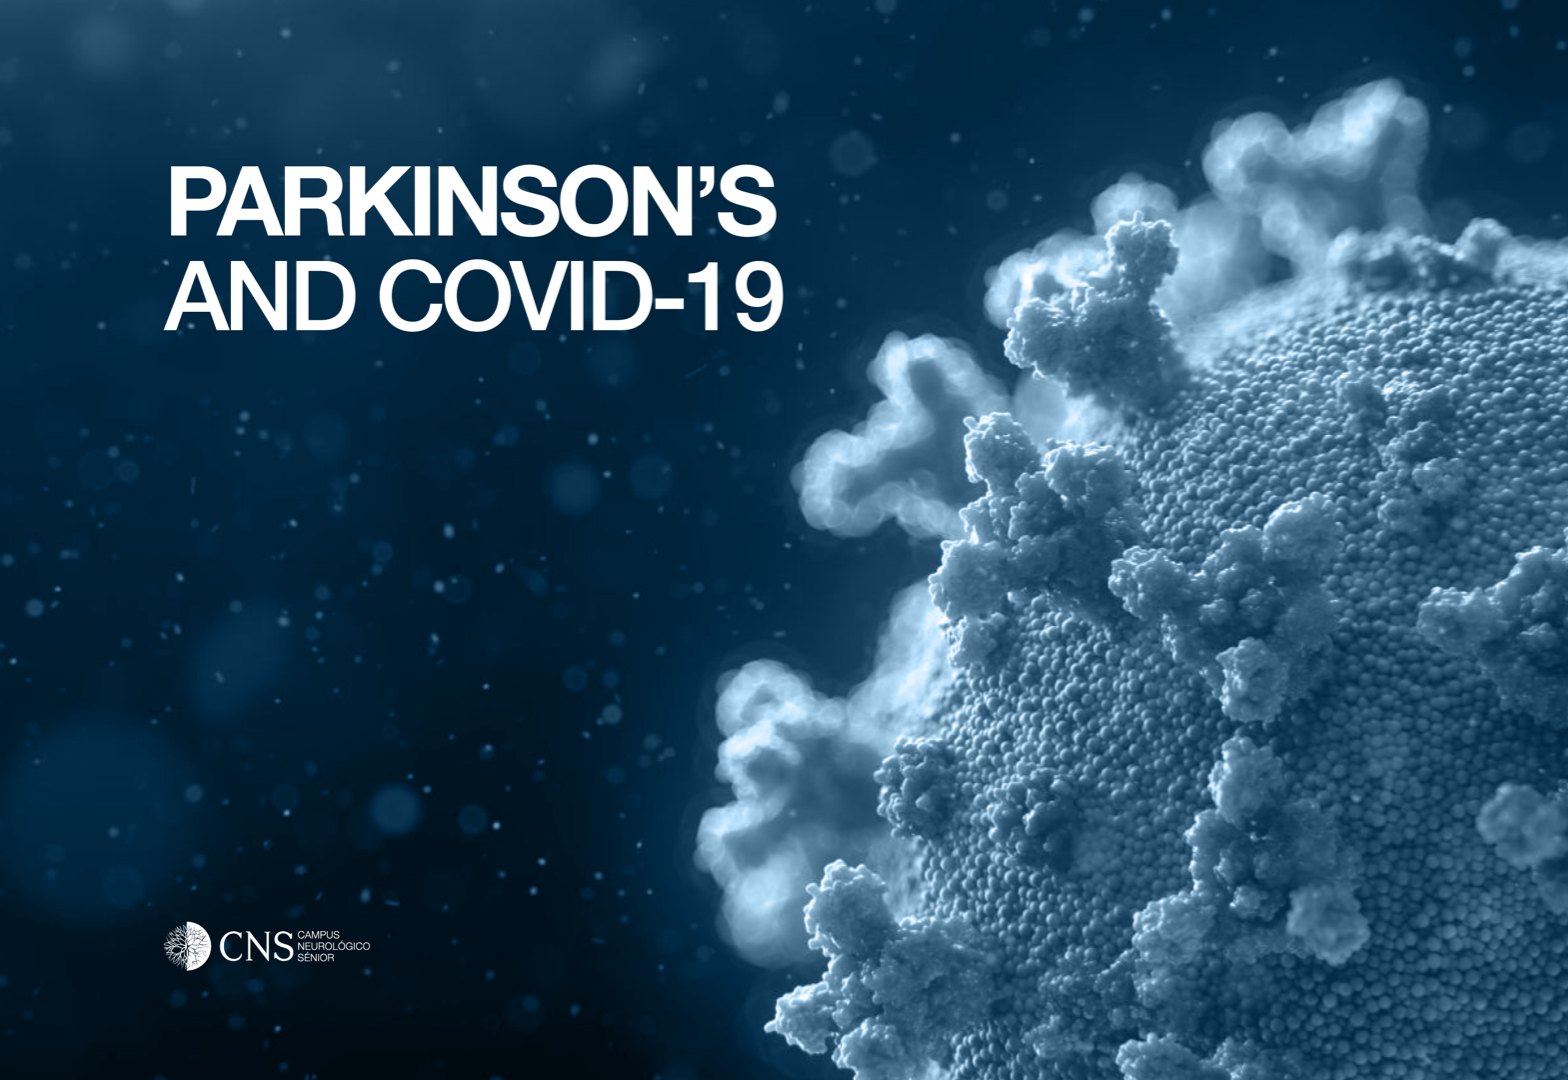 Parkinson's and Covid 19